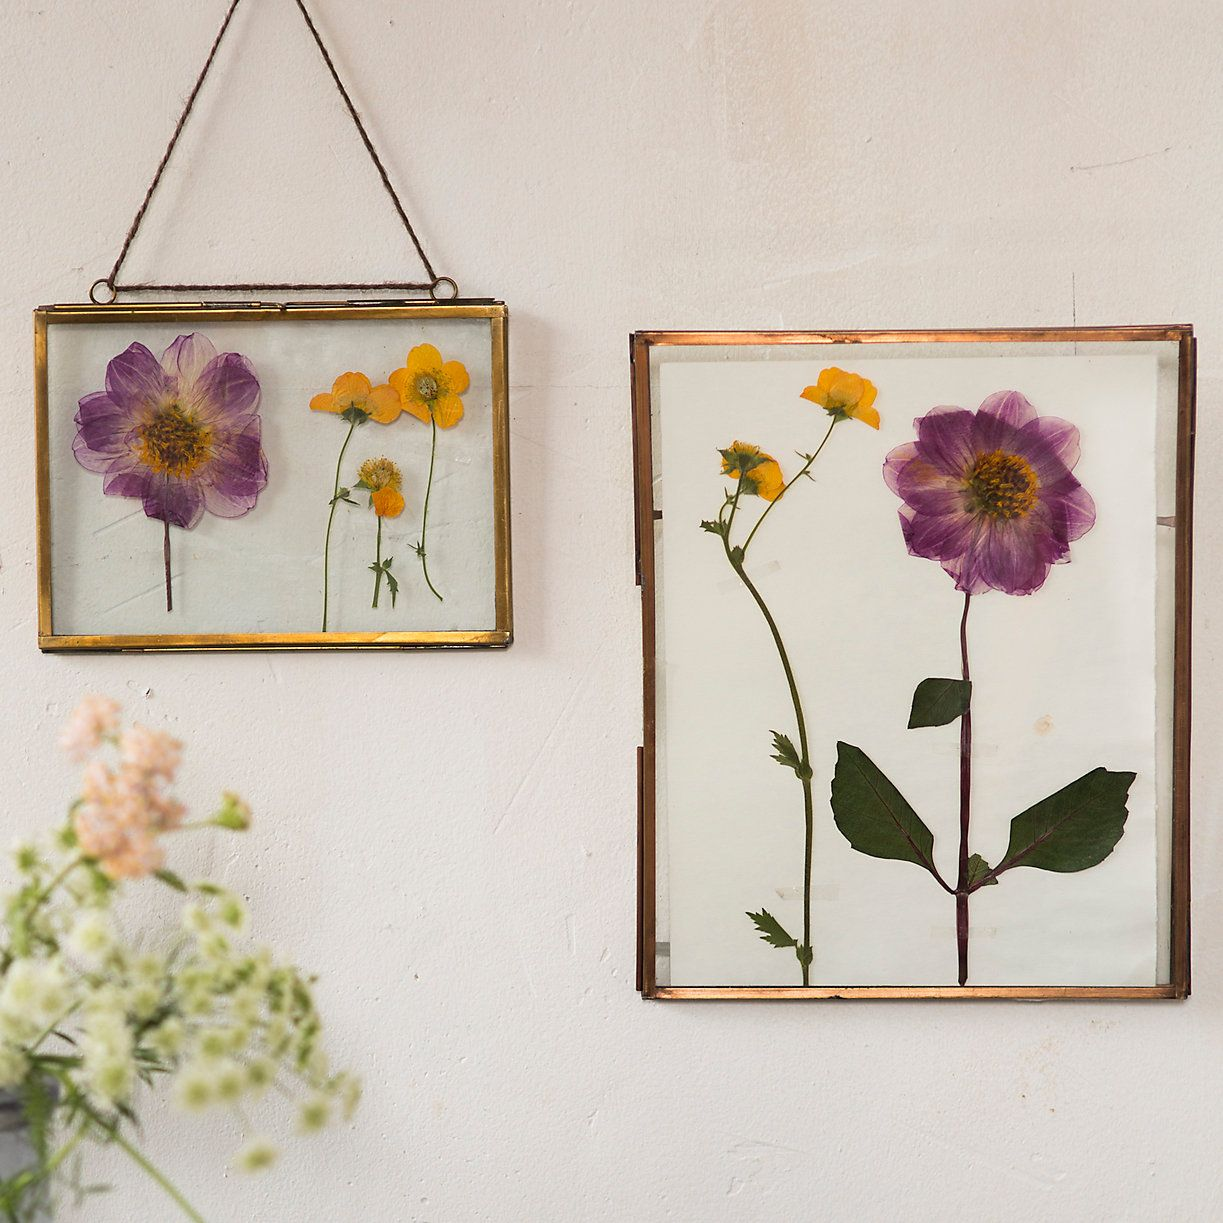 A Bronzed Finish Lends Polished Appeal To Dried Botanicals Inside These Hanging Frames With Double Glass Panes And Hinged Construction For Easy Stylin